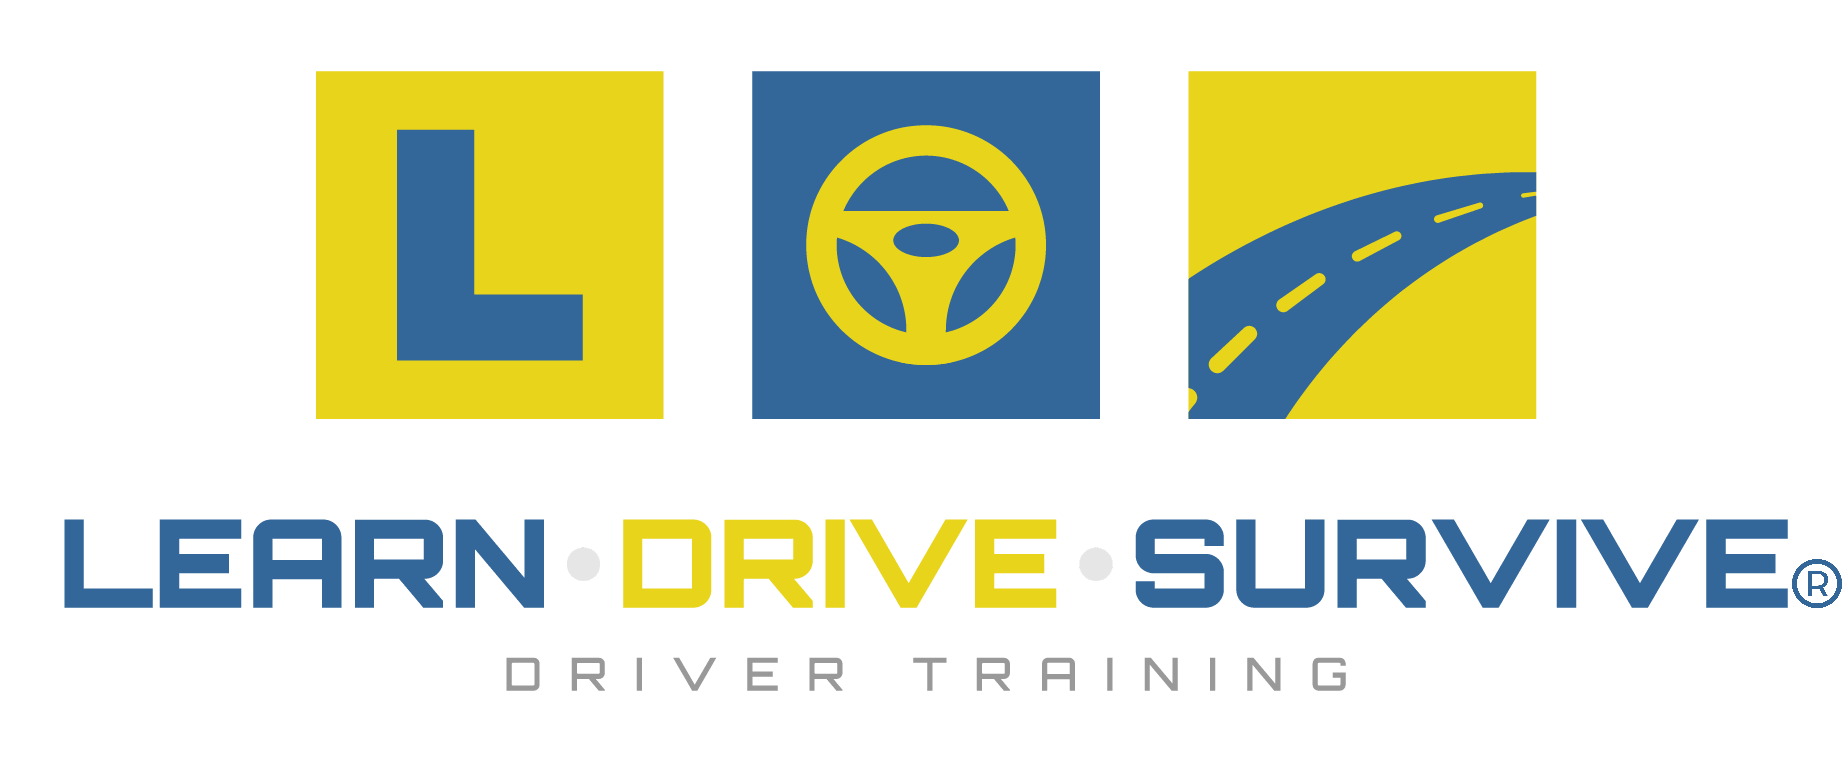 NSW Safer Drivers Course Learn Drive Survive